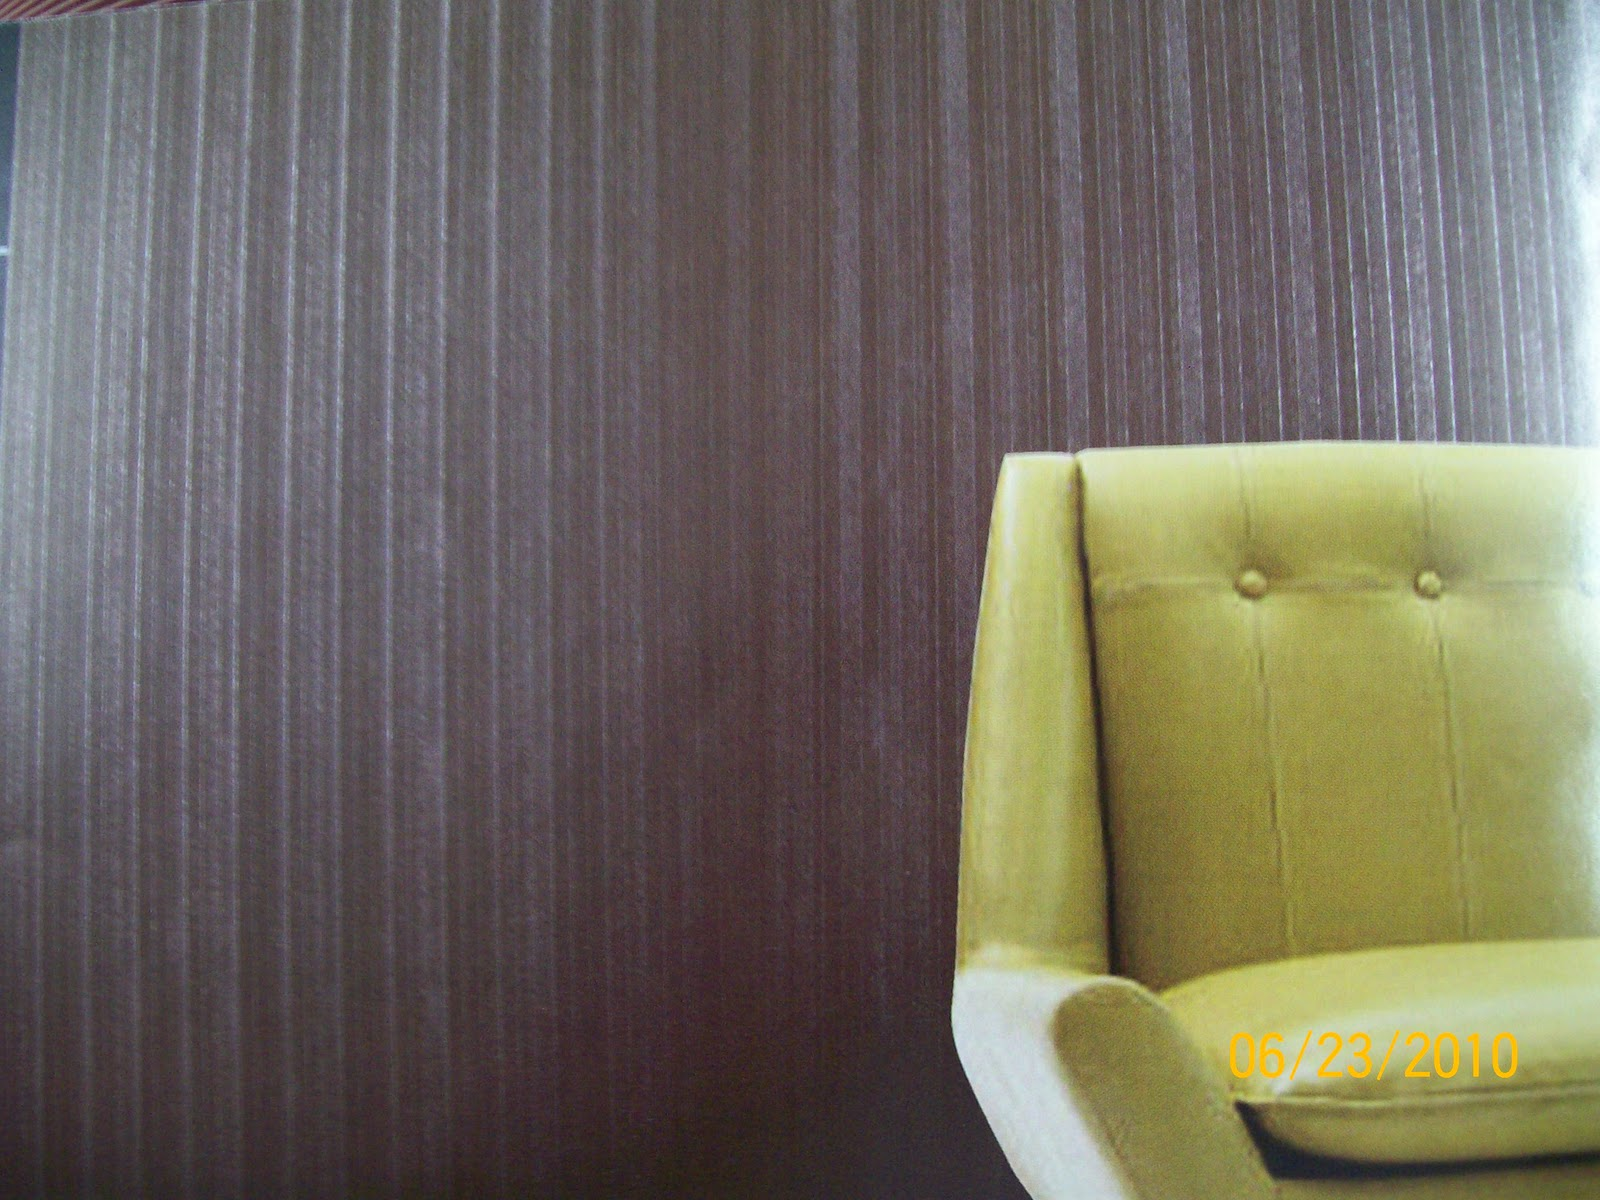 Decorative wall coverings 2017 grasscloth wallpaper decorative printed multicolor wall coverings home decor wallpapers amipublicfo Gallery